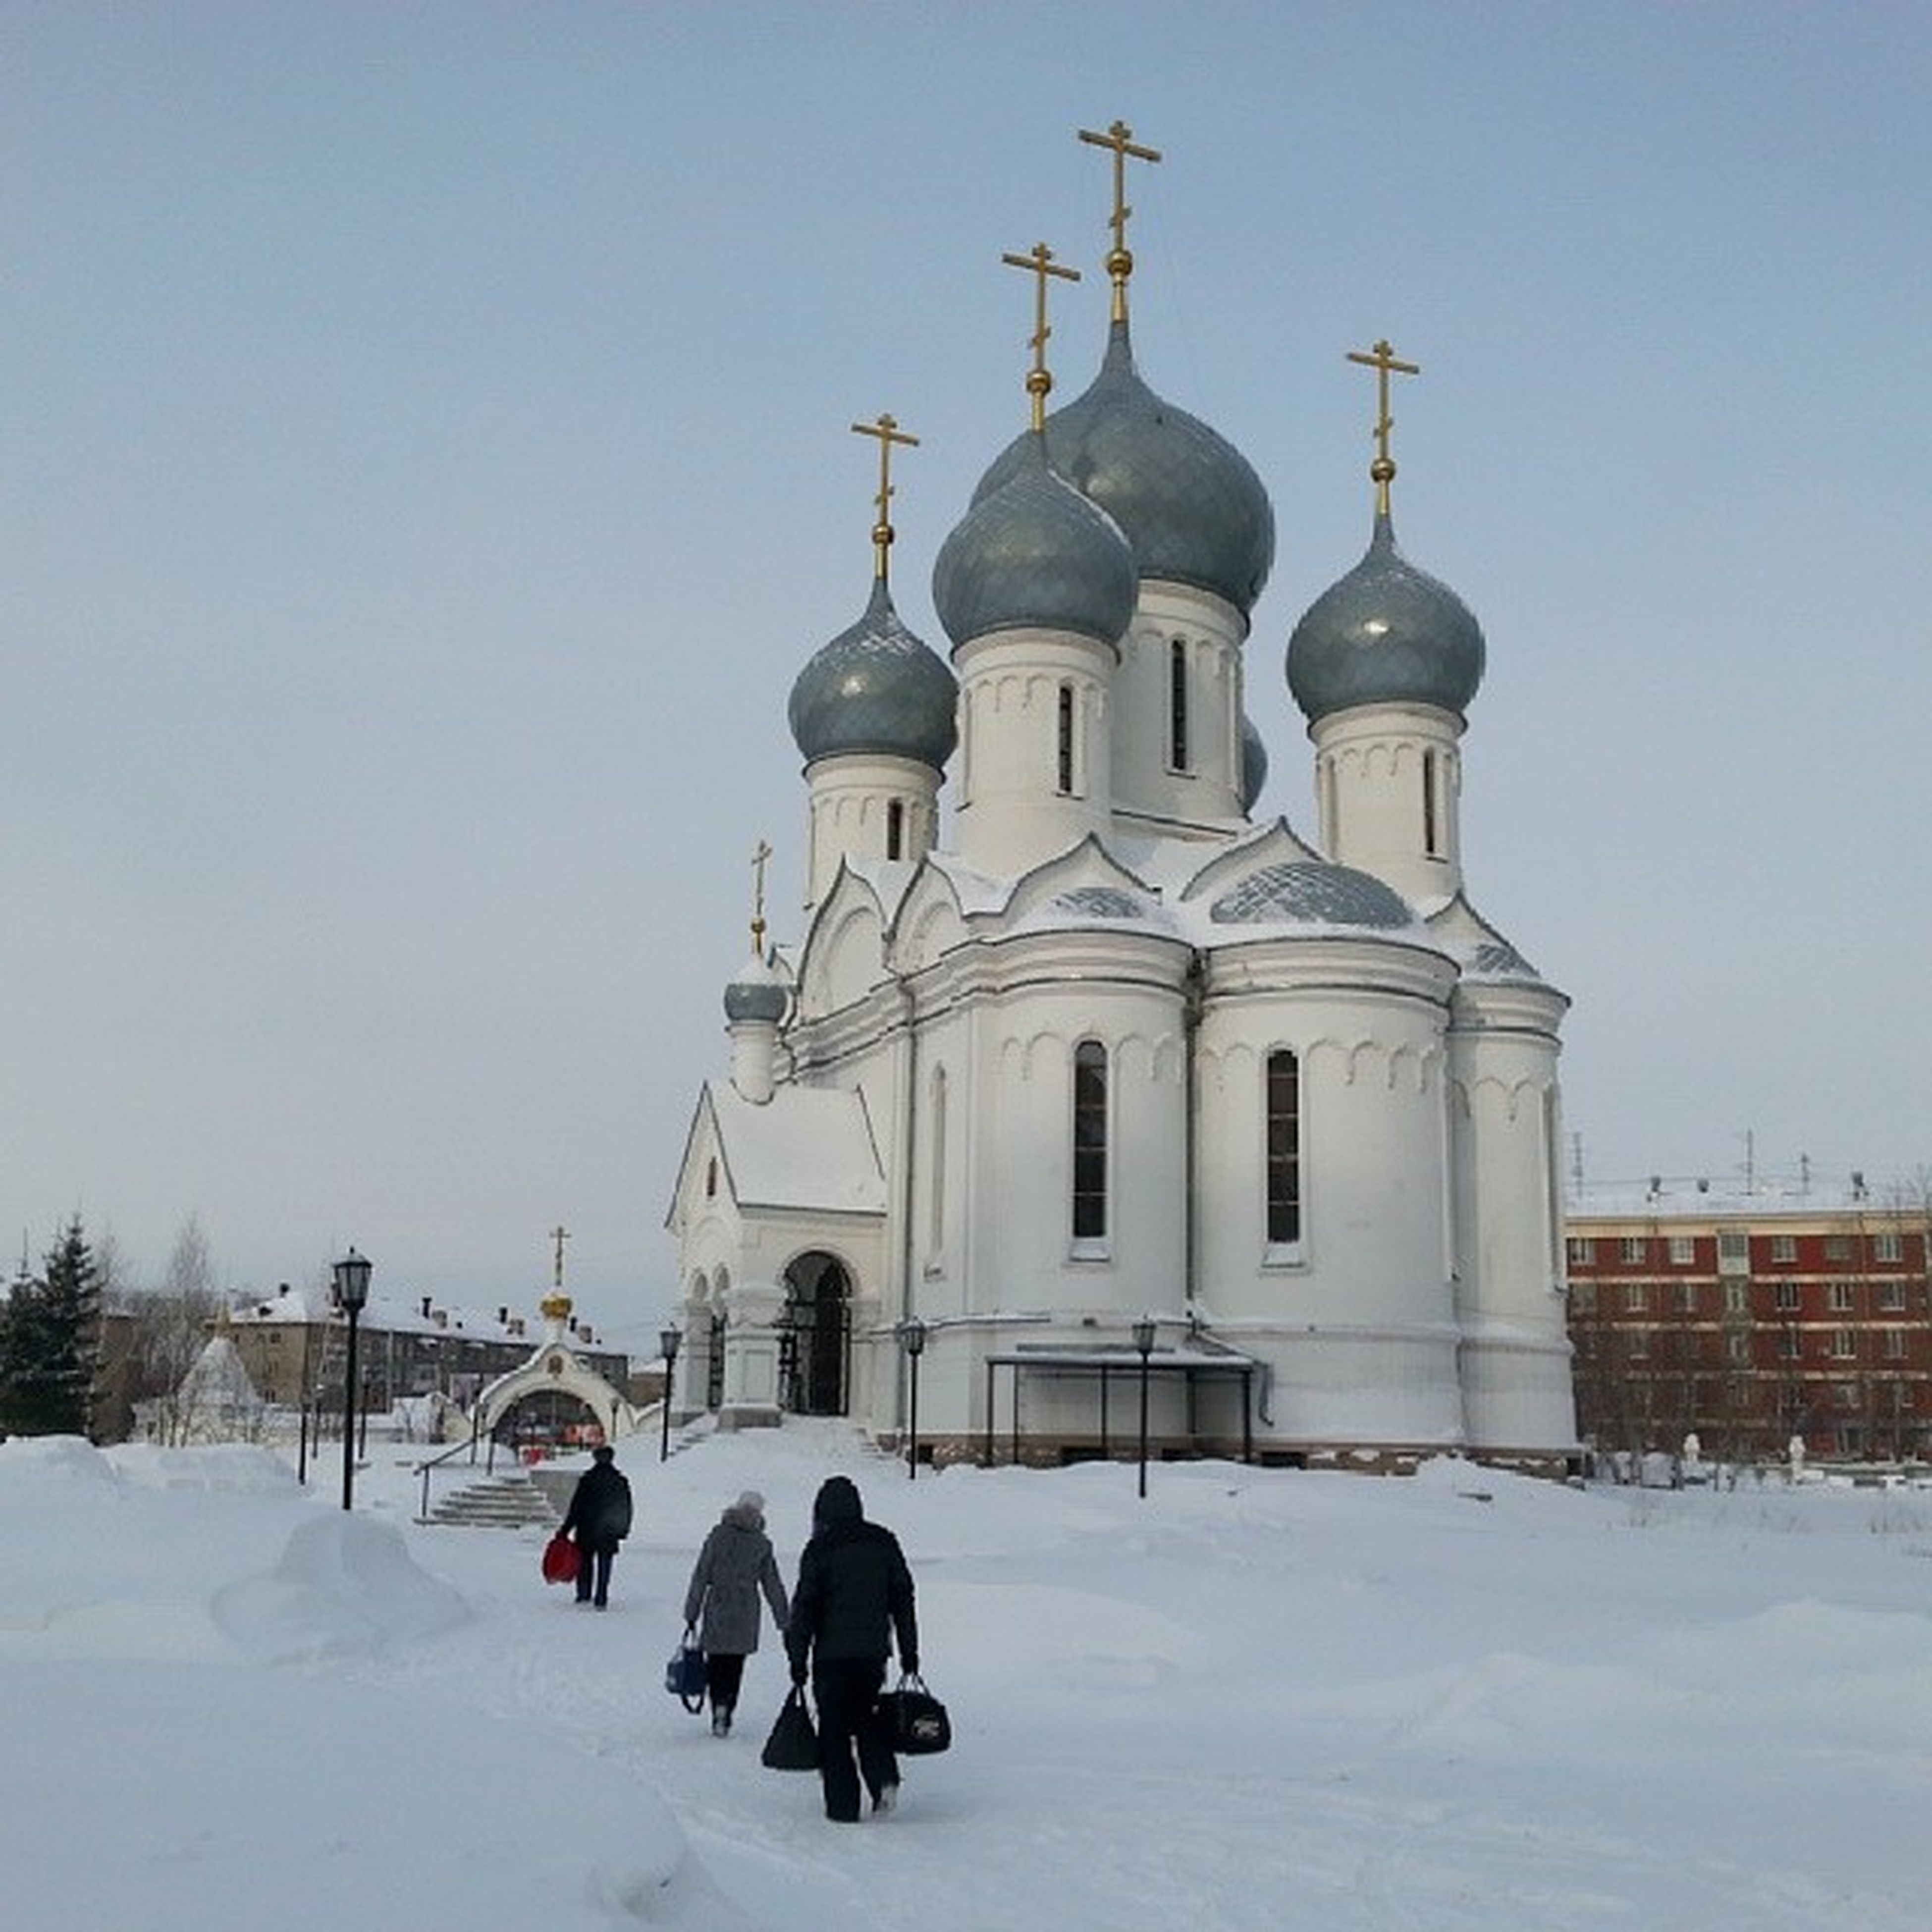 winter, snow, cold temperature, architecture, built structure, building exterior, clear sky, season, place of worship, church, religion, rear view, men, walking, spirituality, dome, lifestyles